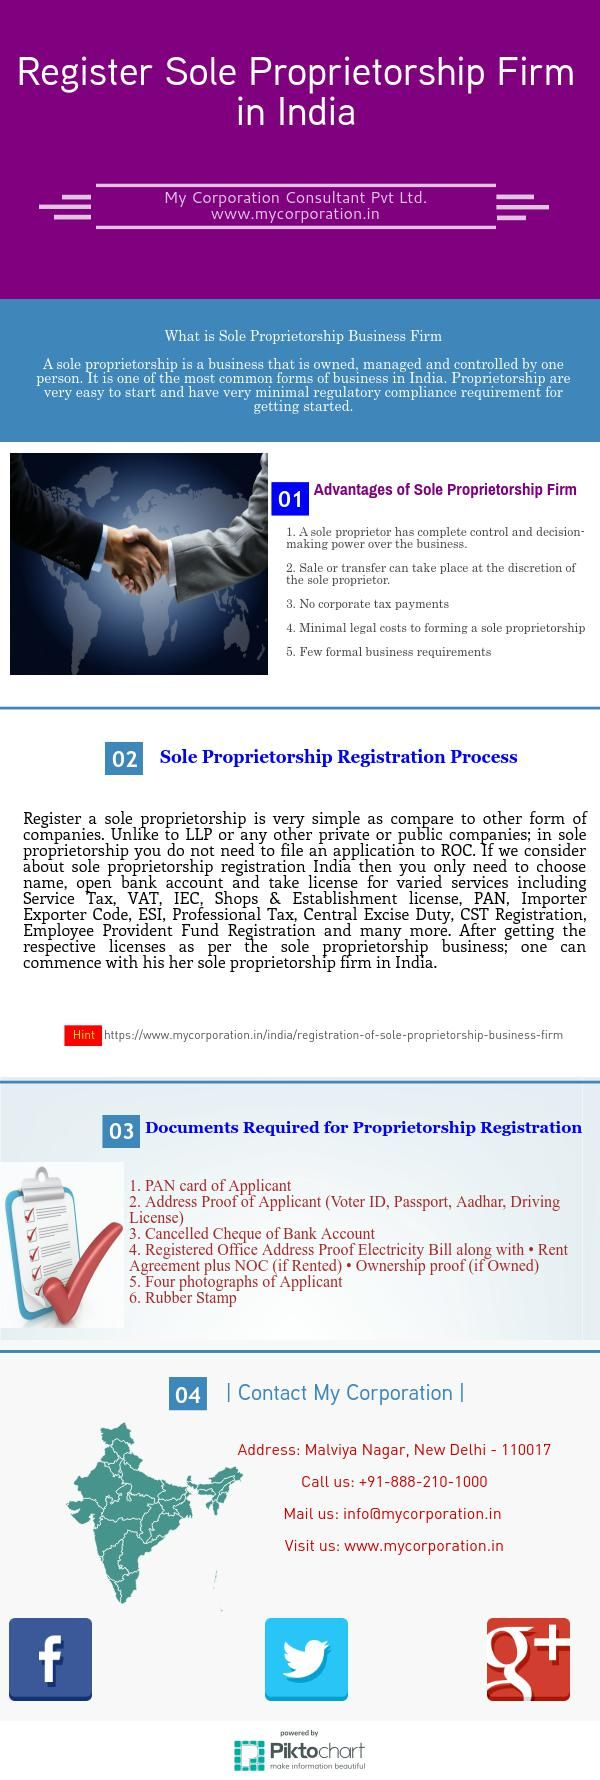 A sole proprietorship is a business that is owned, managed and controlled by one person. It is one of the most common forms of business in India. Proprietorship are very easy to start and have very minimal regulatory compliance requirement for getting started.